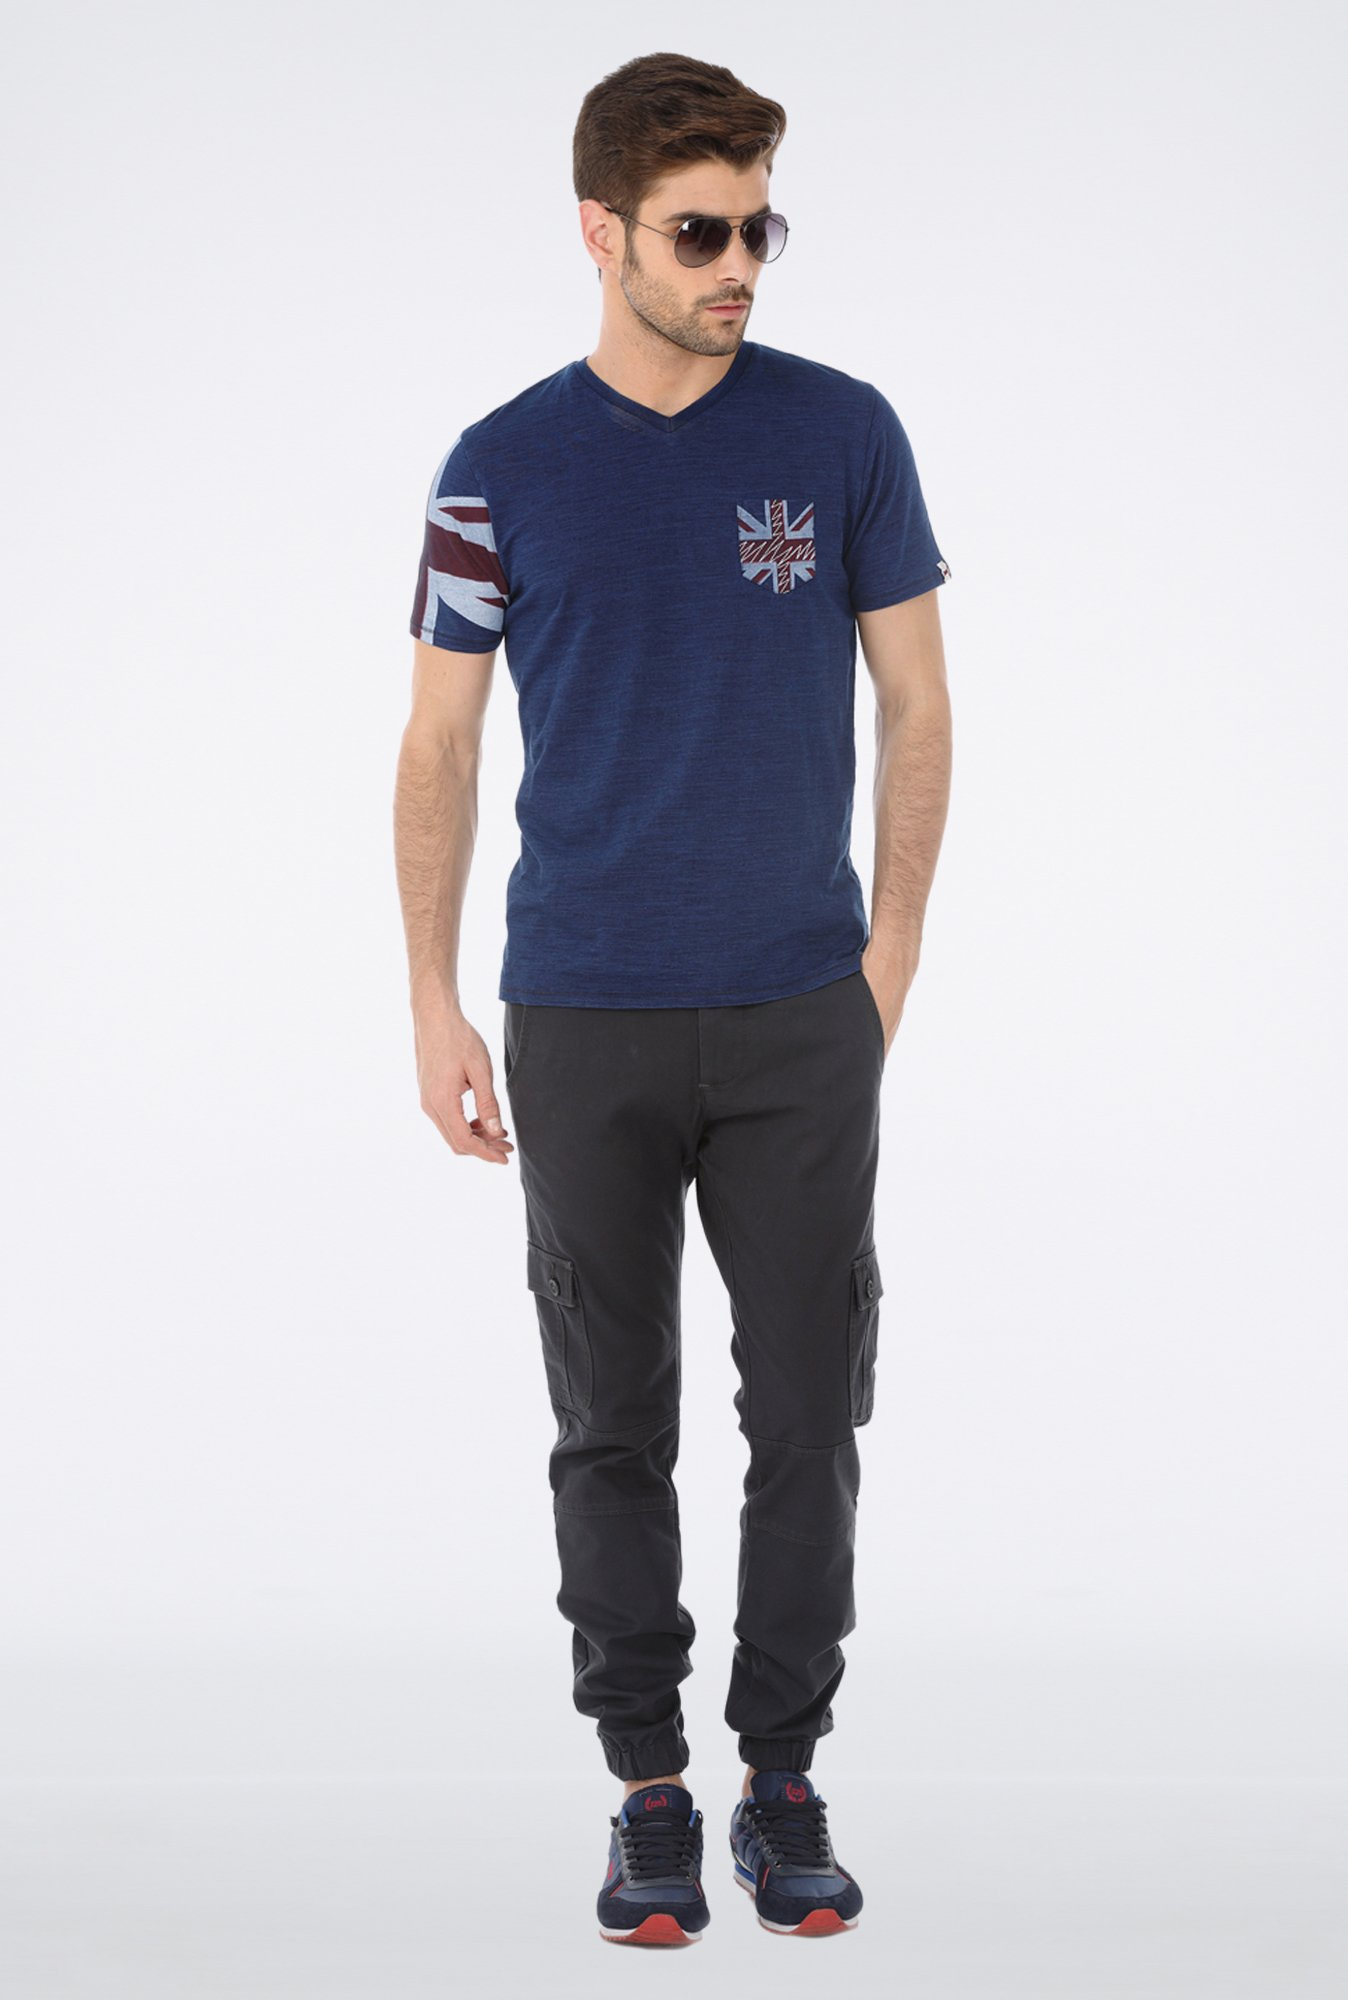 Basics Navy V neck T Shirt